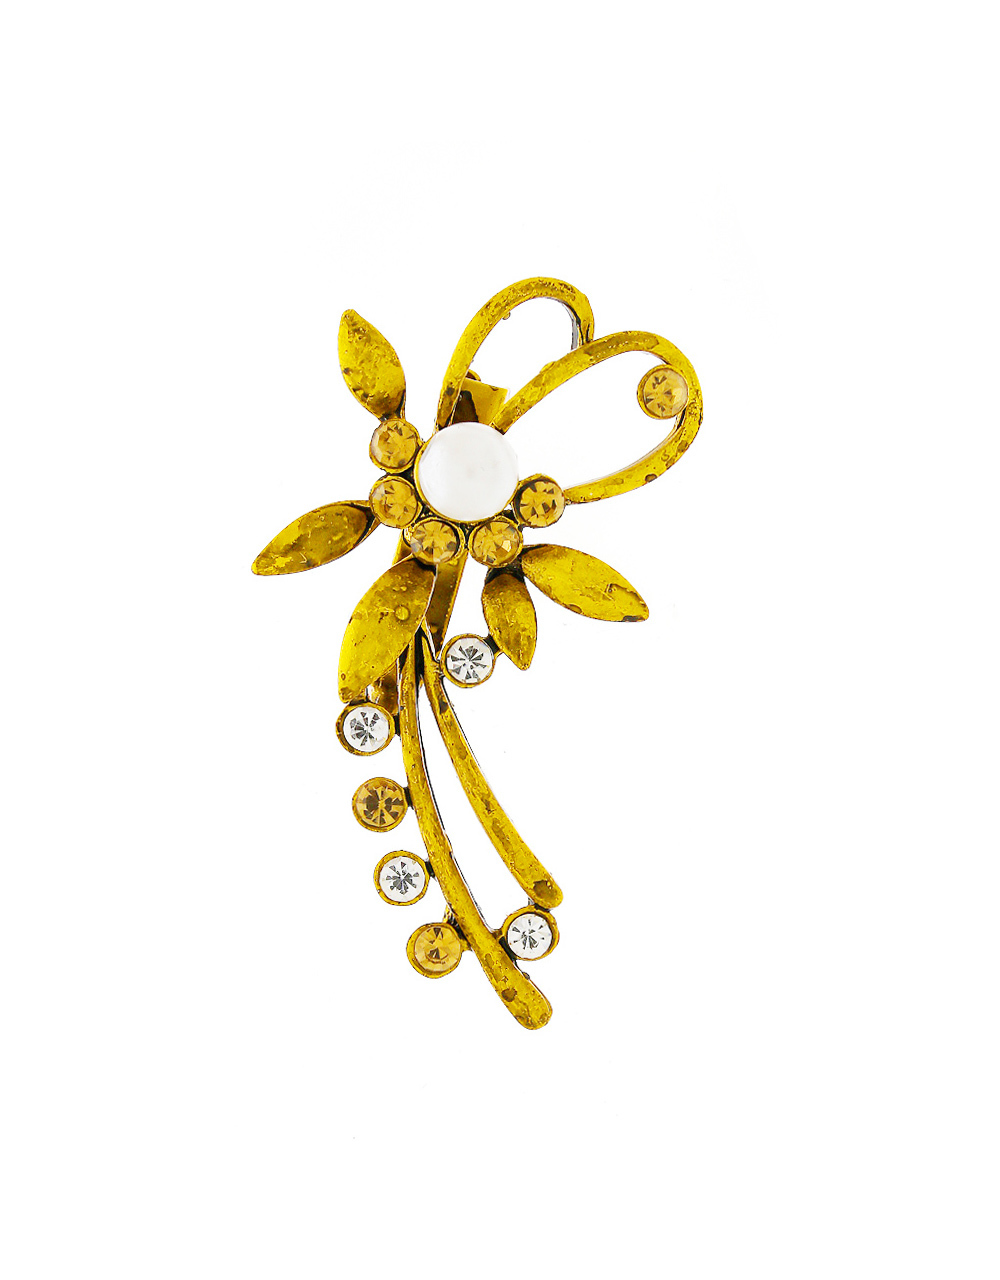 Floral Design Gold Finish Studded With Stones Brooch For Women